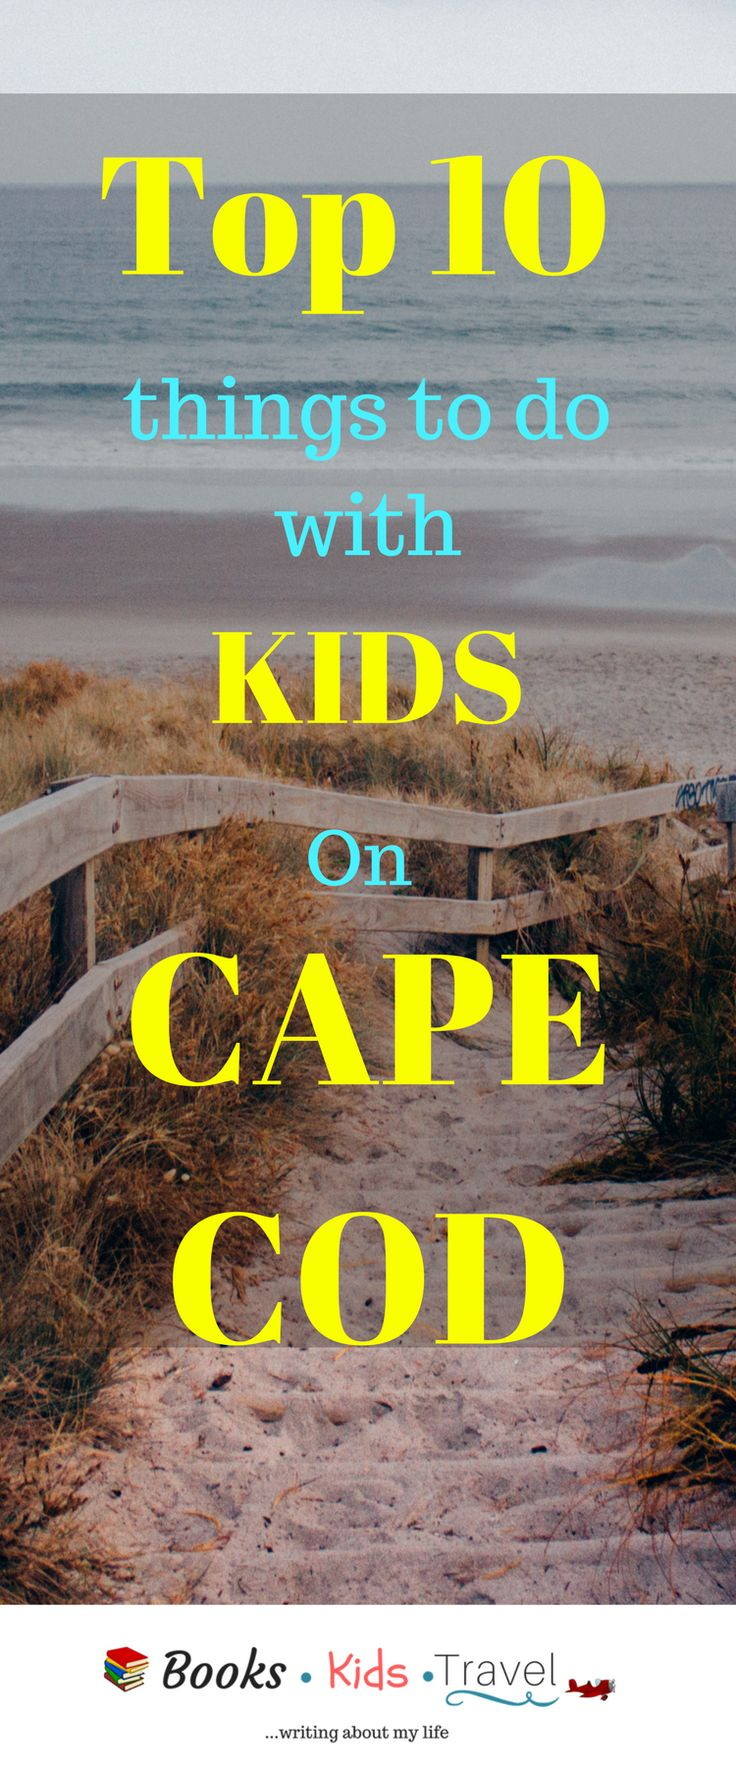 Top 10 things to do with Kids on Cape Cod this Summer! Cape Cod is a very family friendly destination. Here are my favorite places to take the kids on Cape Cod! via @bookskidstravel